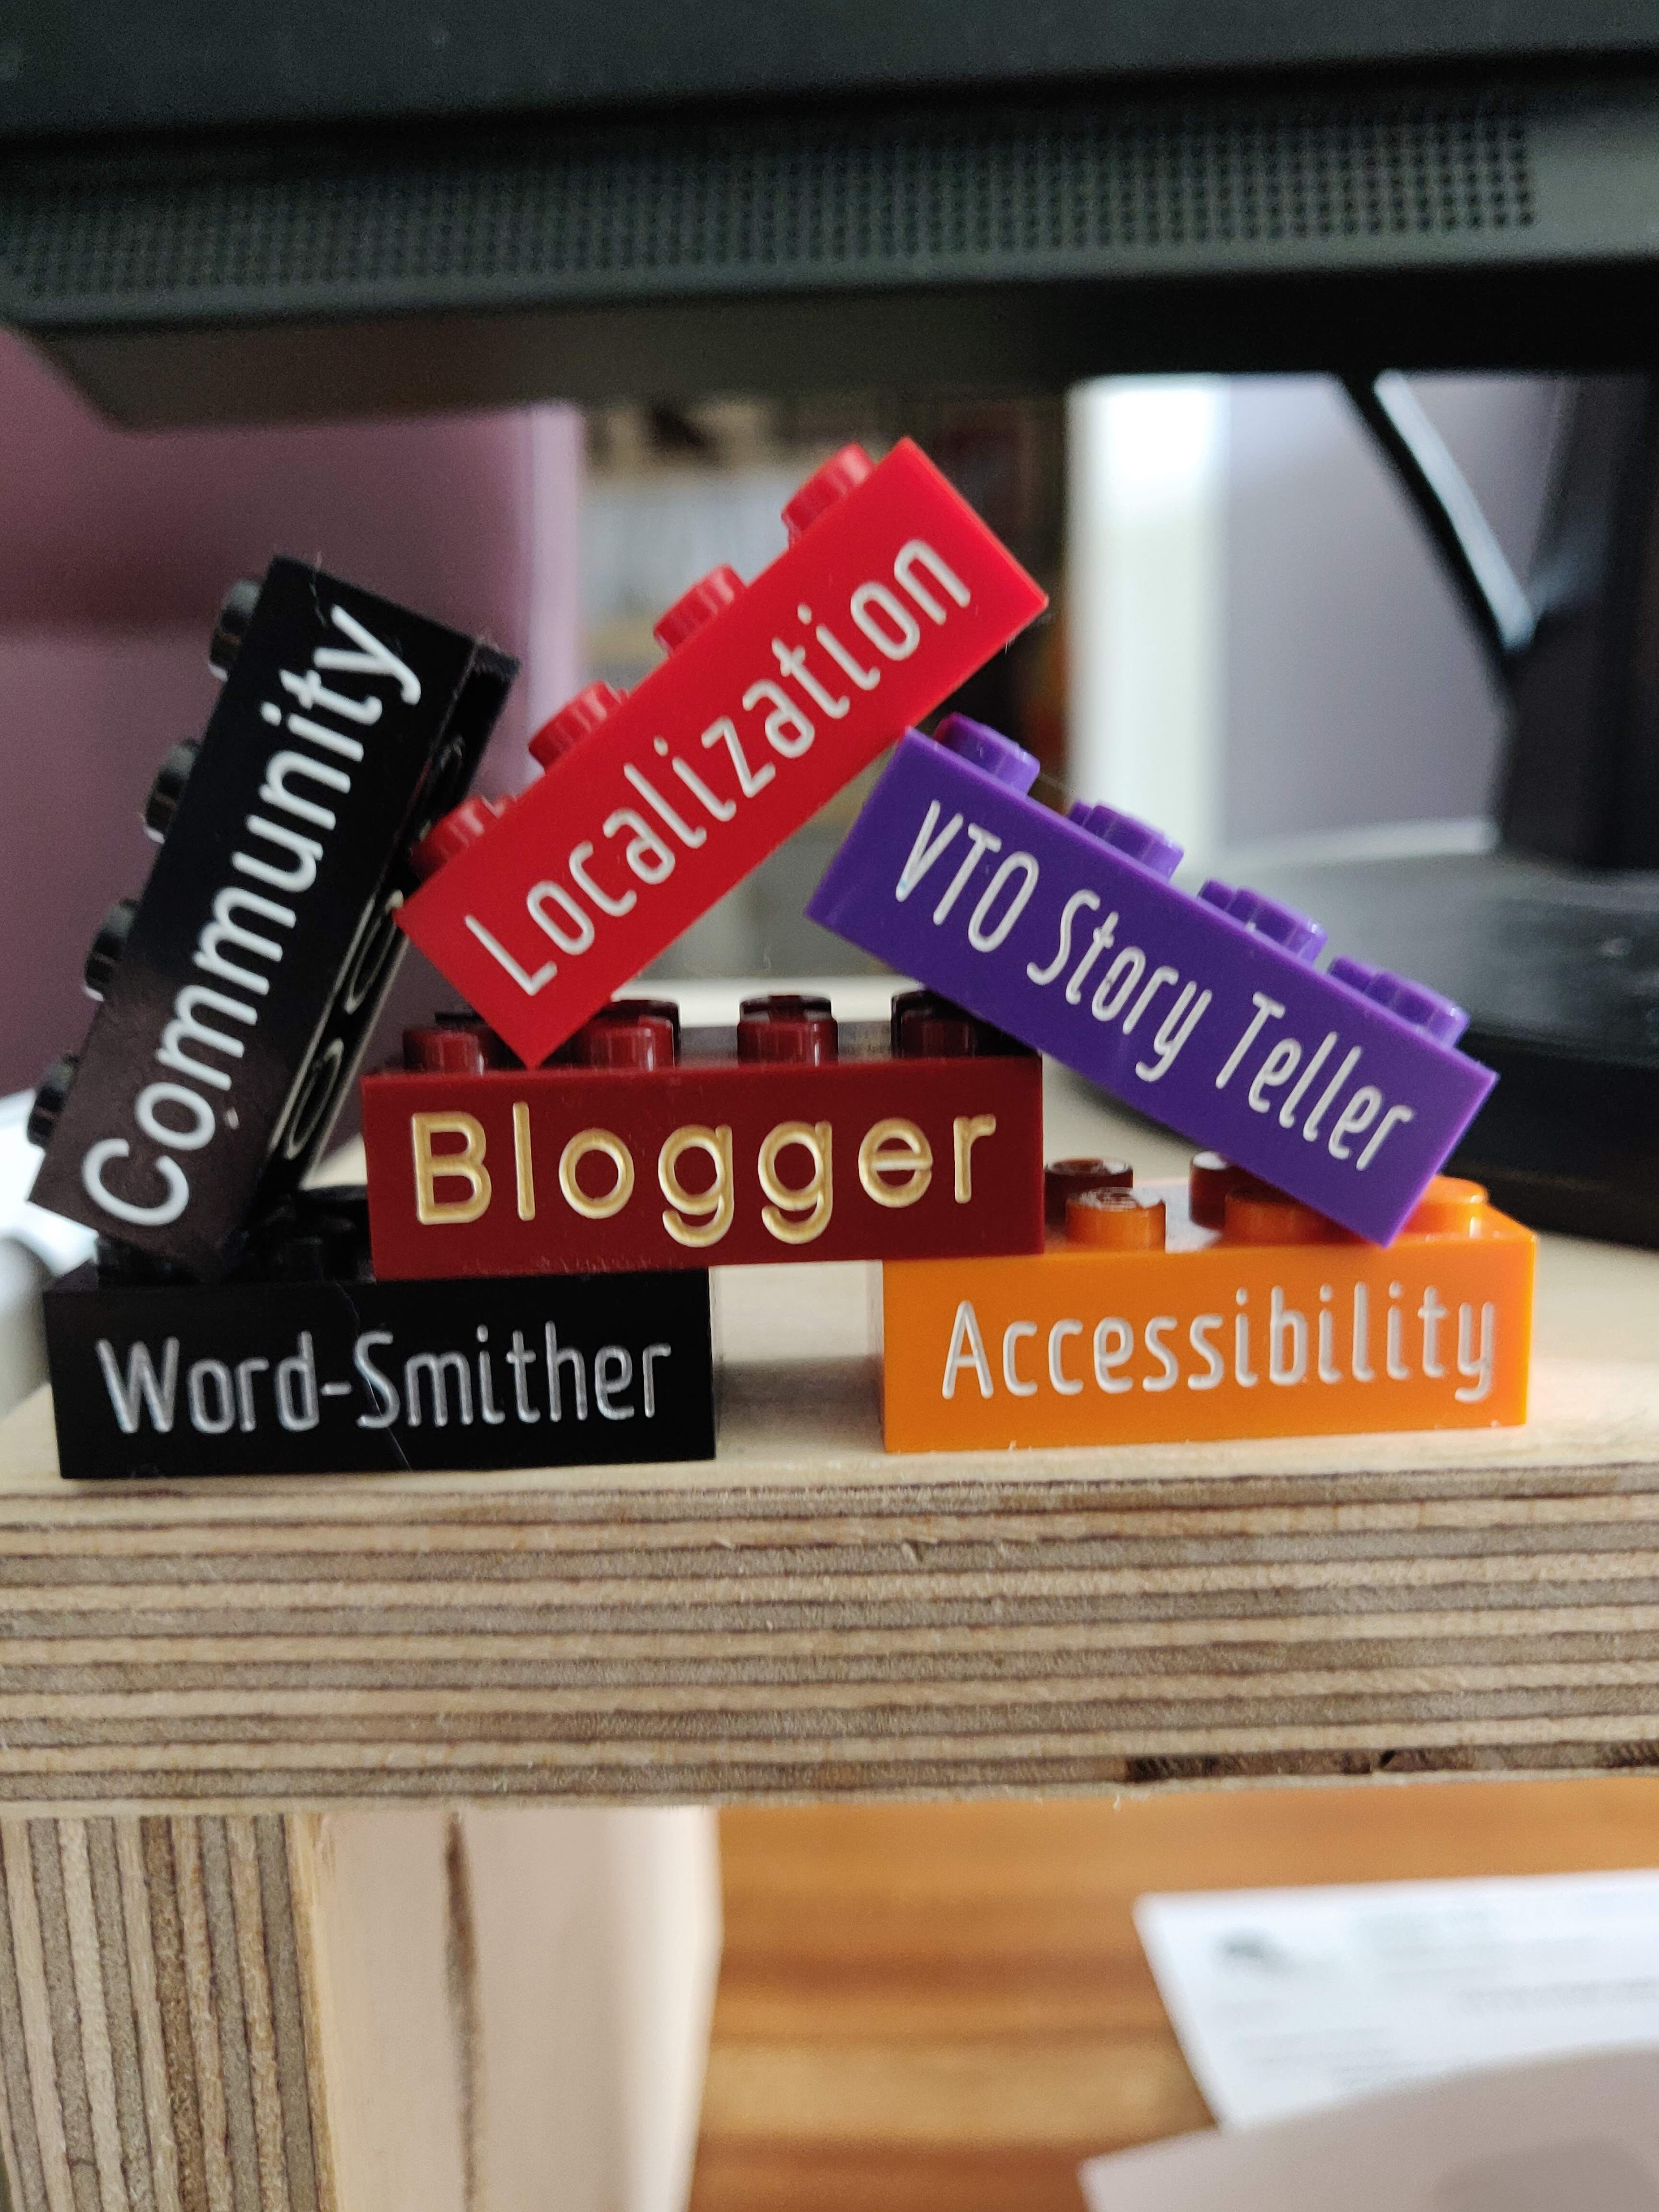 A closeup of Lego blocks with words written on the side of them: Community, Localization, VTO Story Teller, Blogger, Word-Smither, and Accessibility.